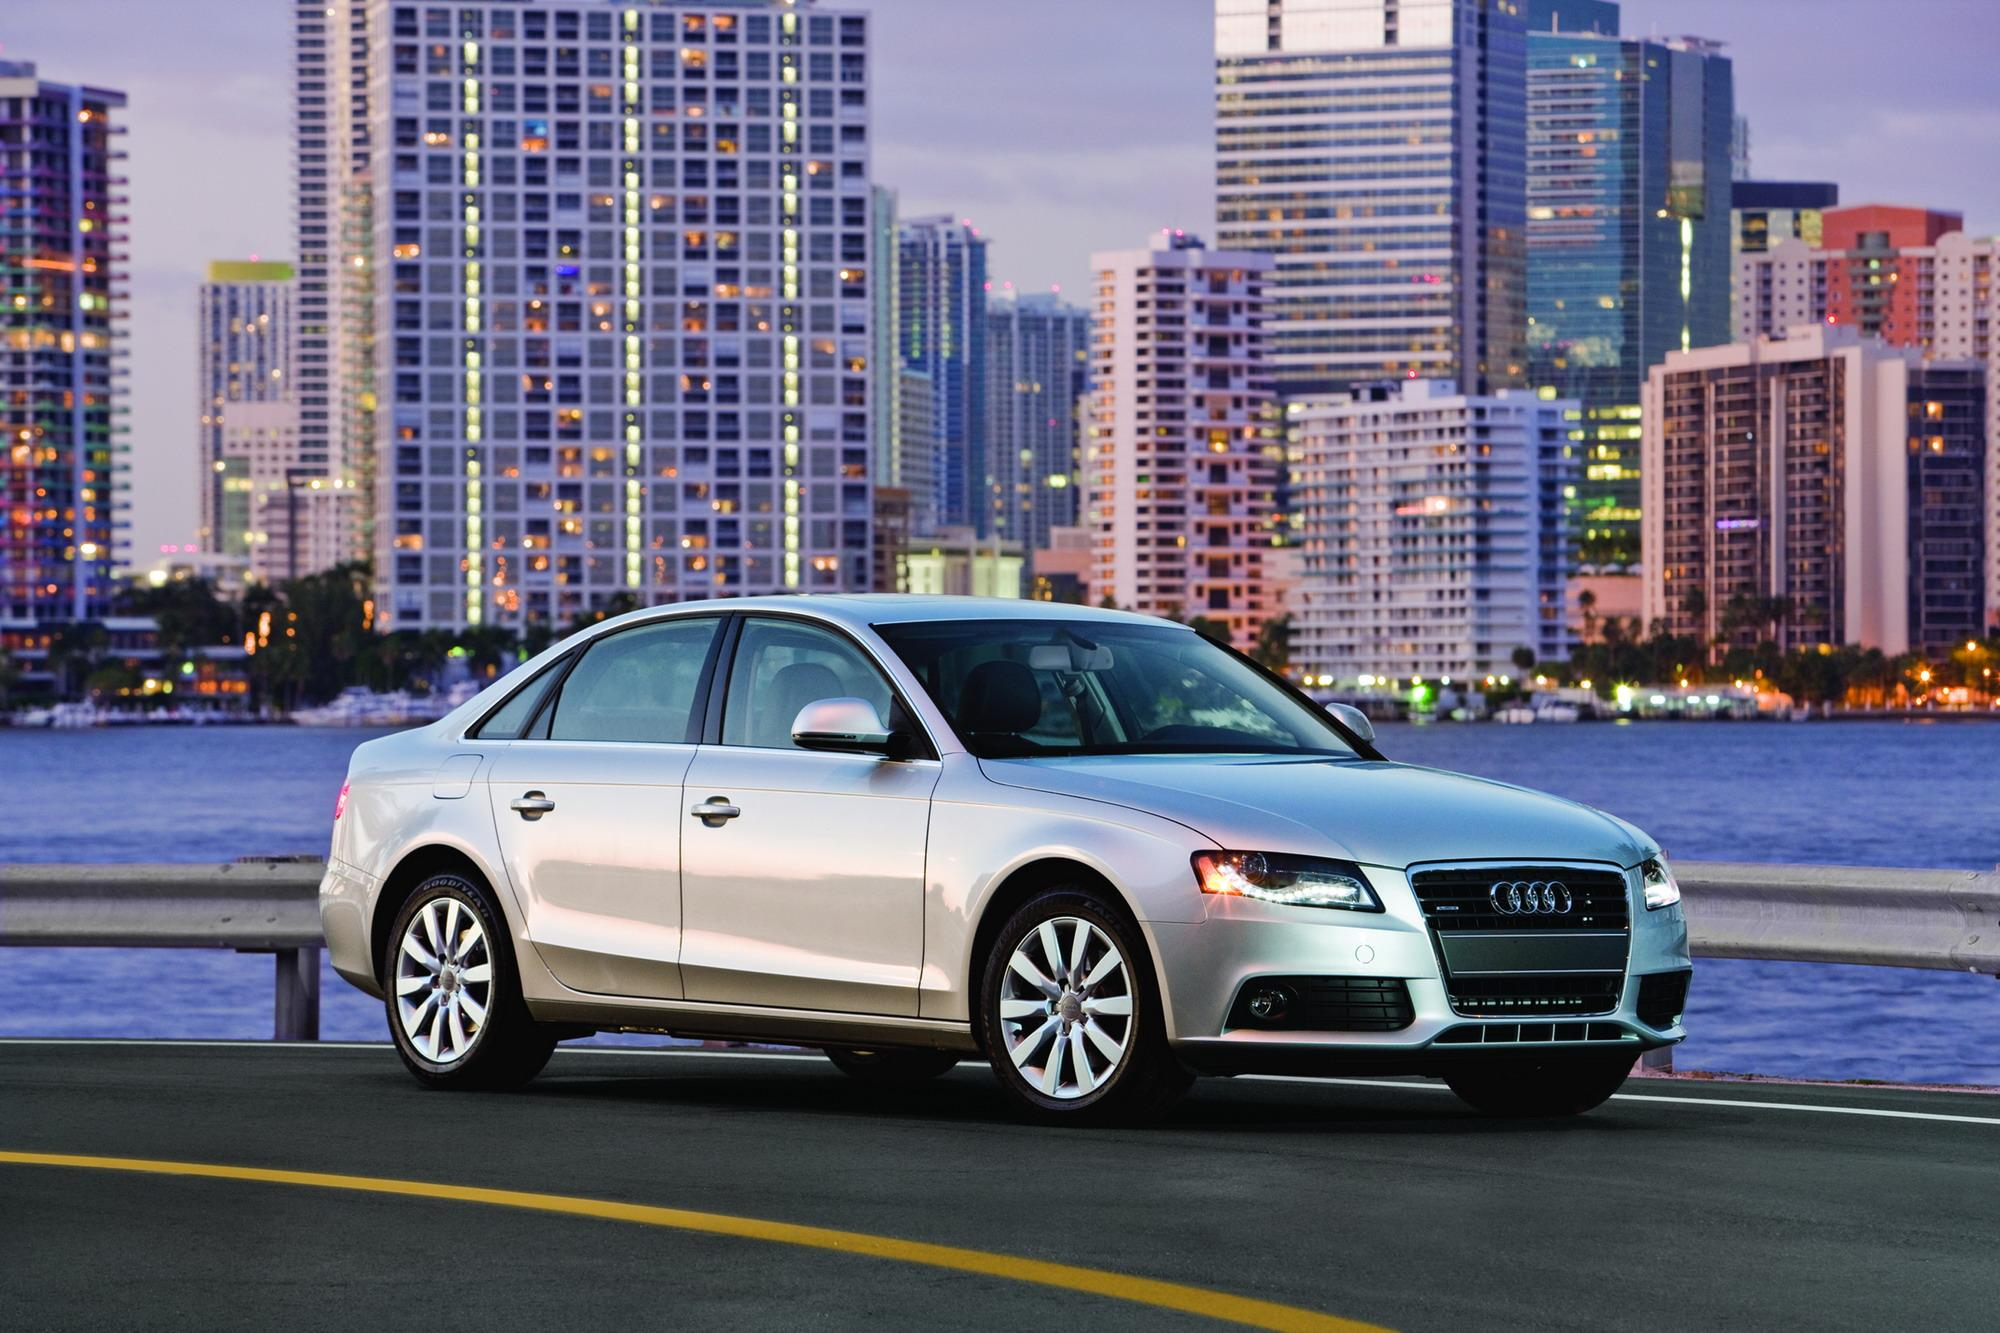 2010 audi a4 a5 q5 prices announced top speed. Black Bedroom Furniture Sets. Home Design Ideas